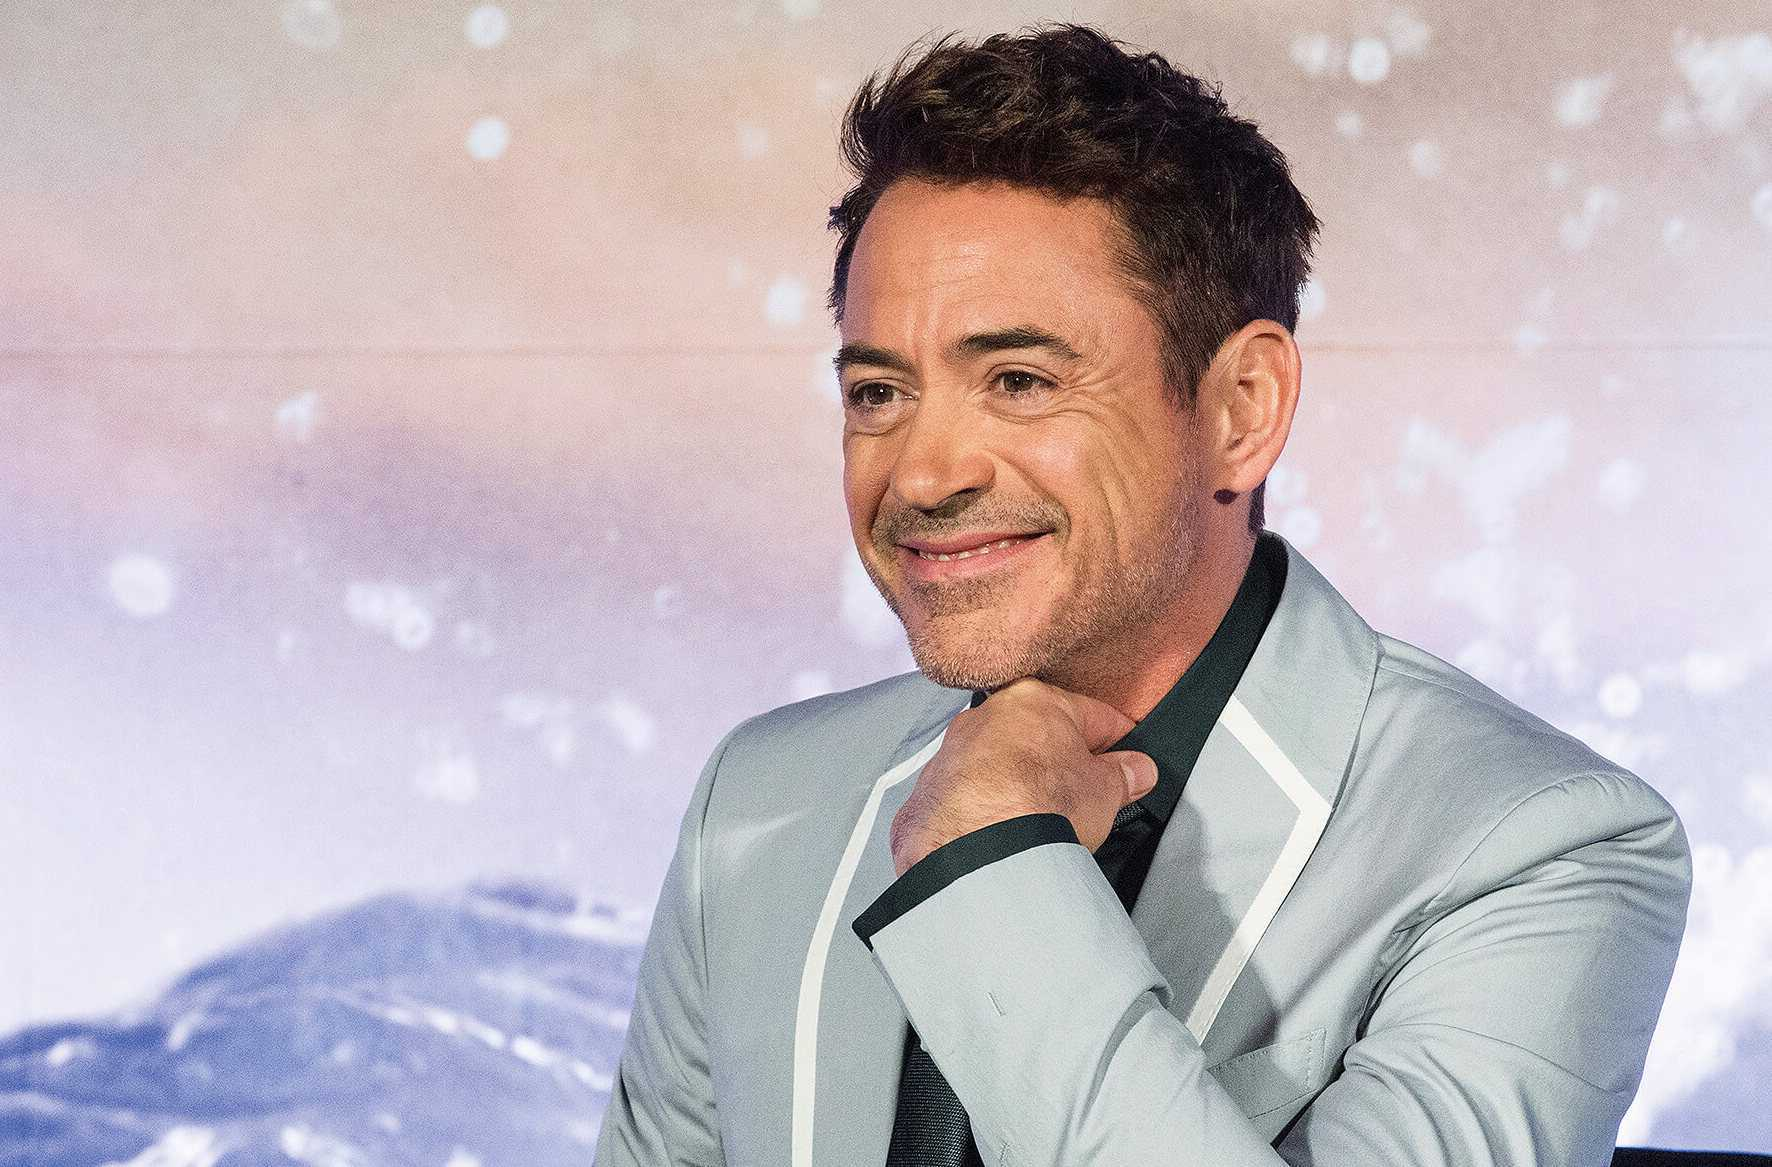 Robert Downey Jr. Career